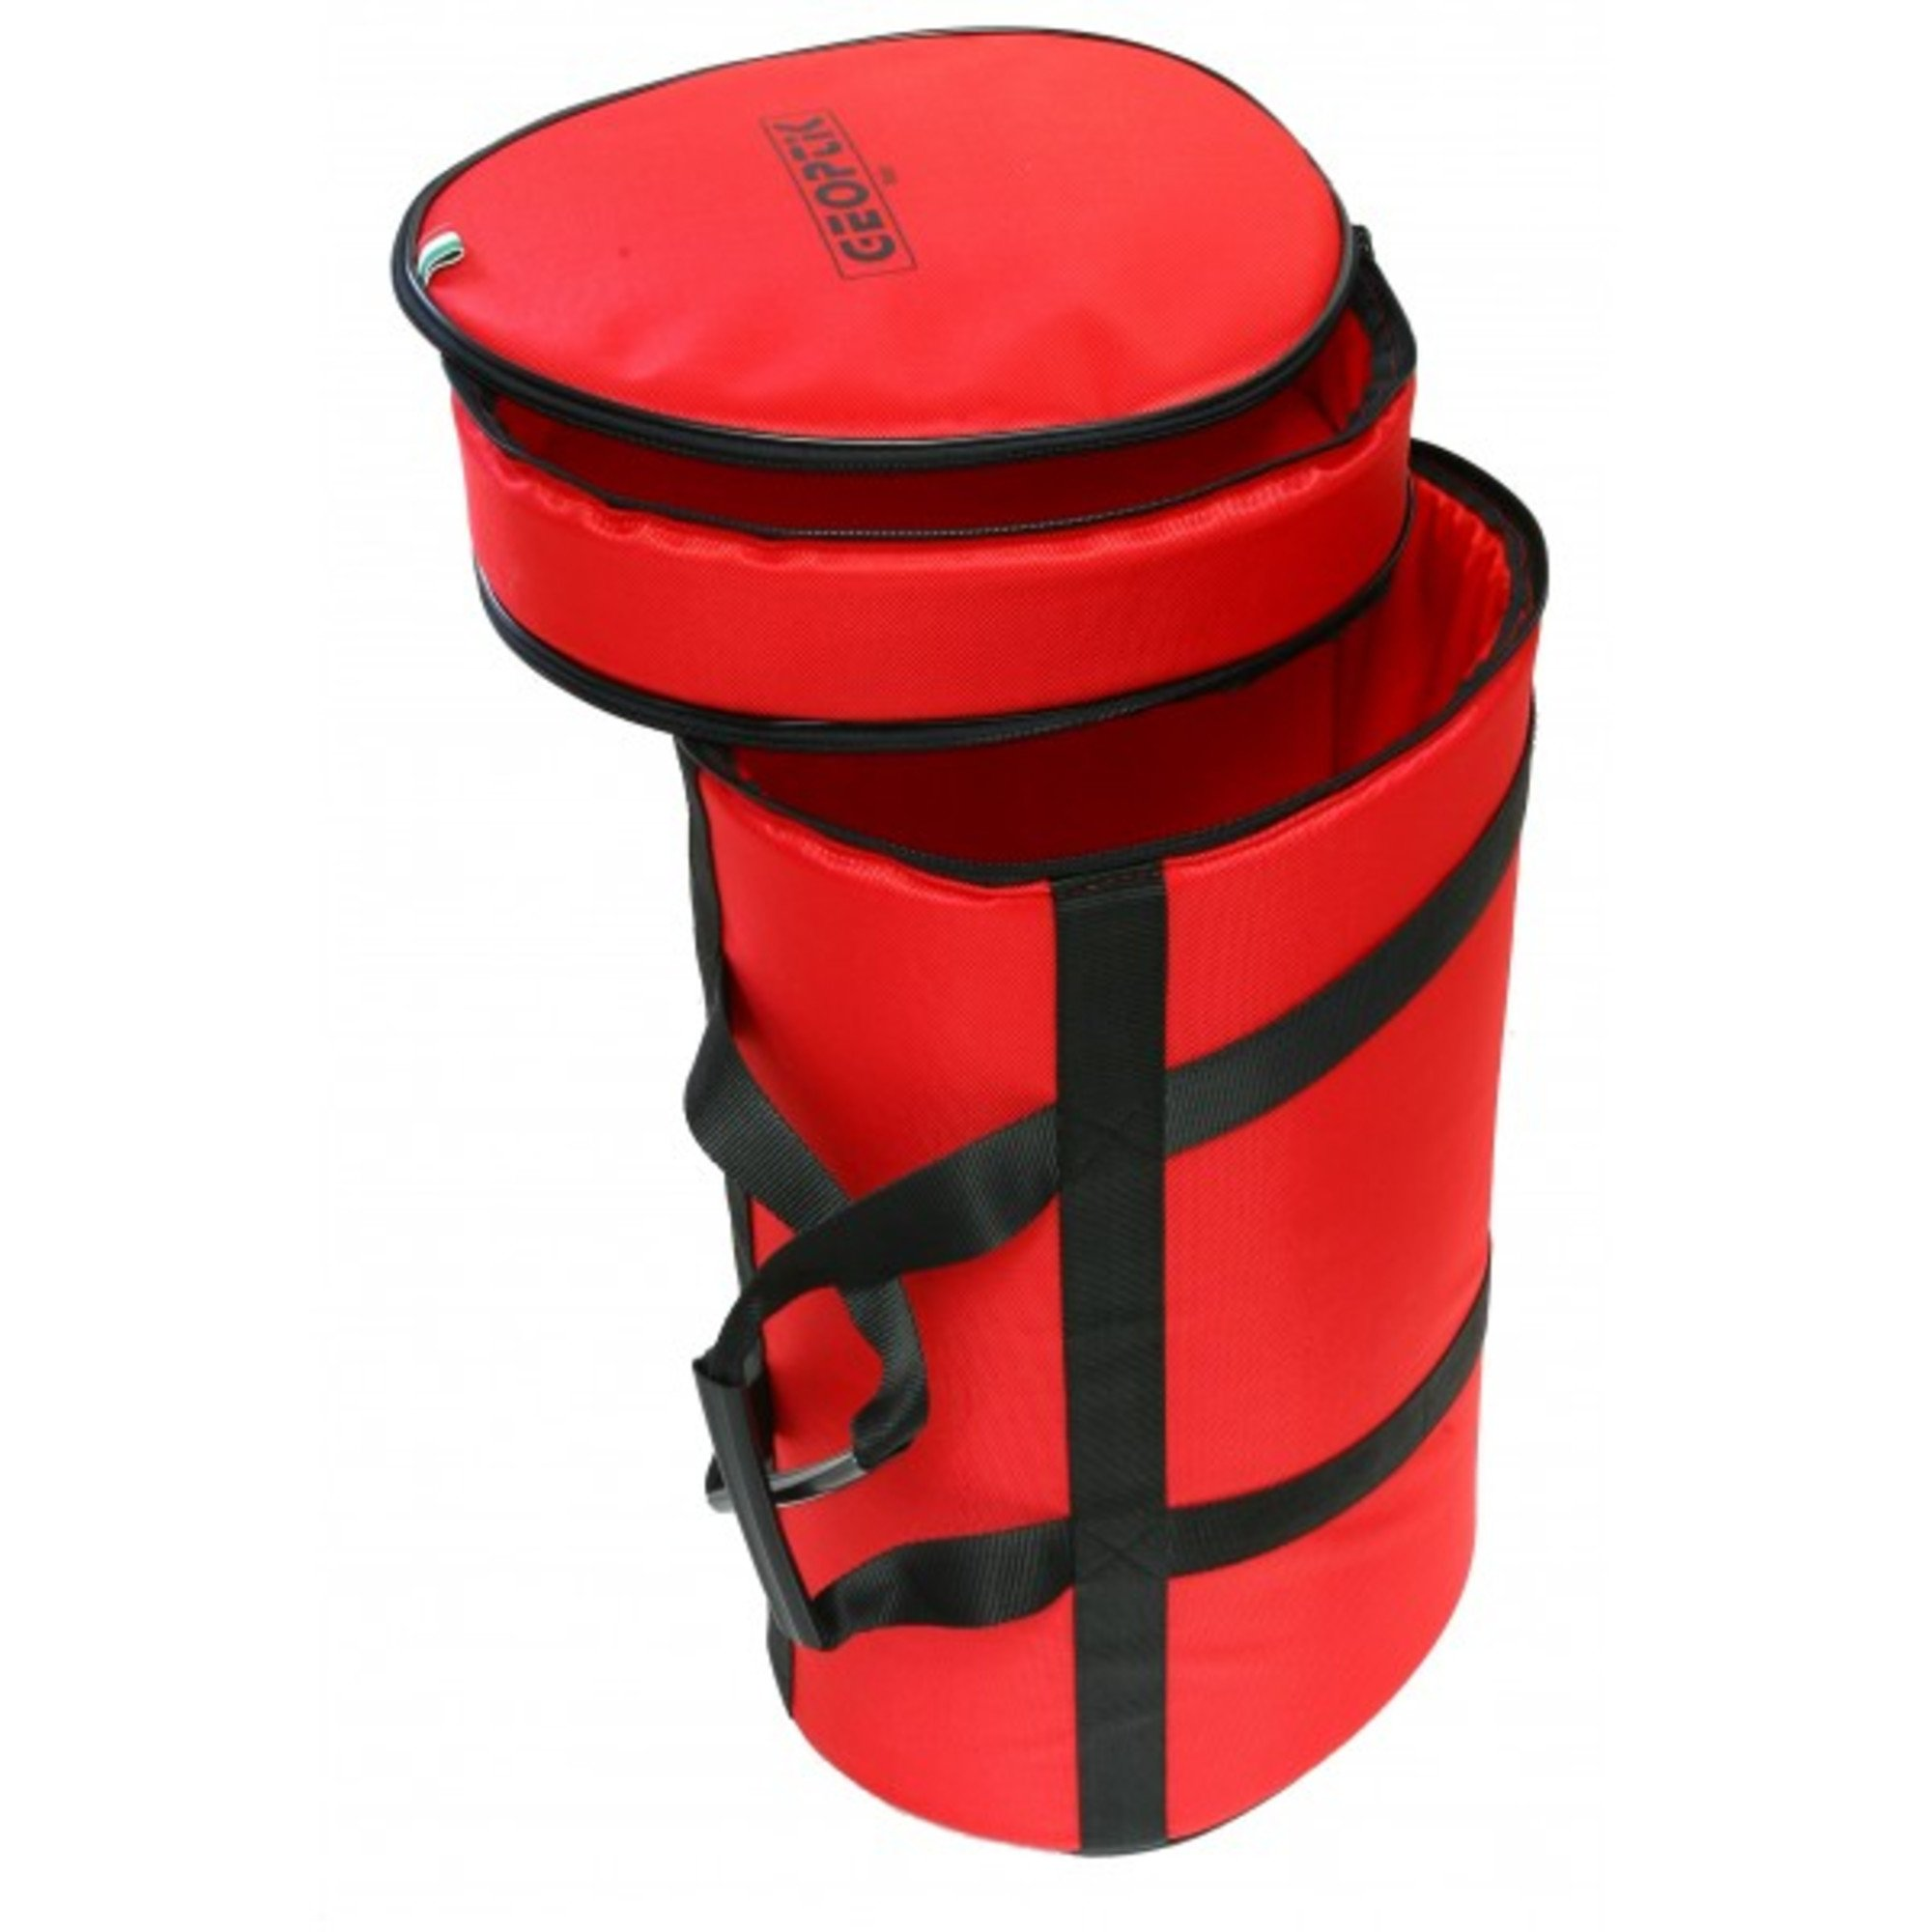 Telescope 30A036Padded Bag for Telescope, Red by Geoptik (Image #3)